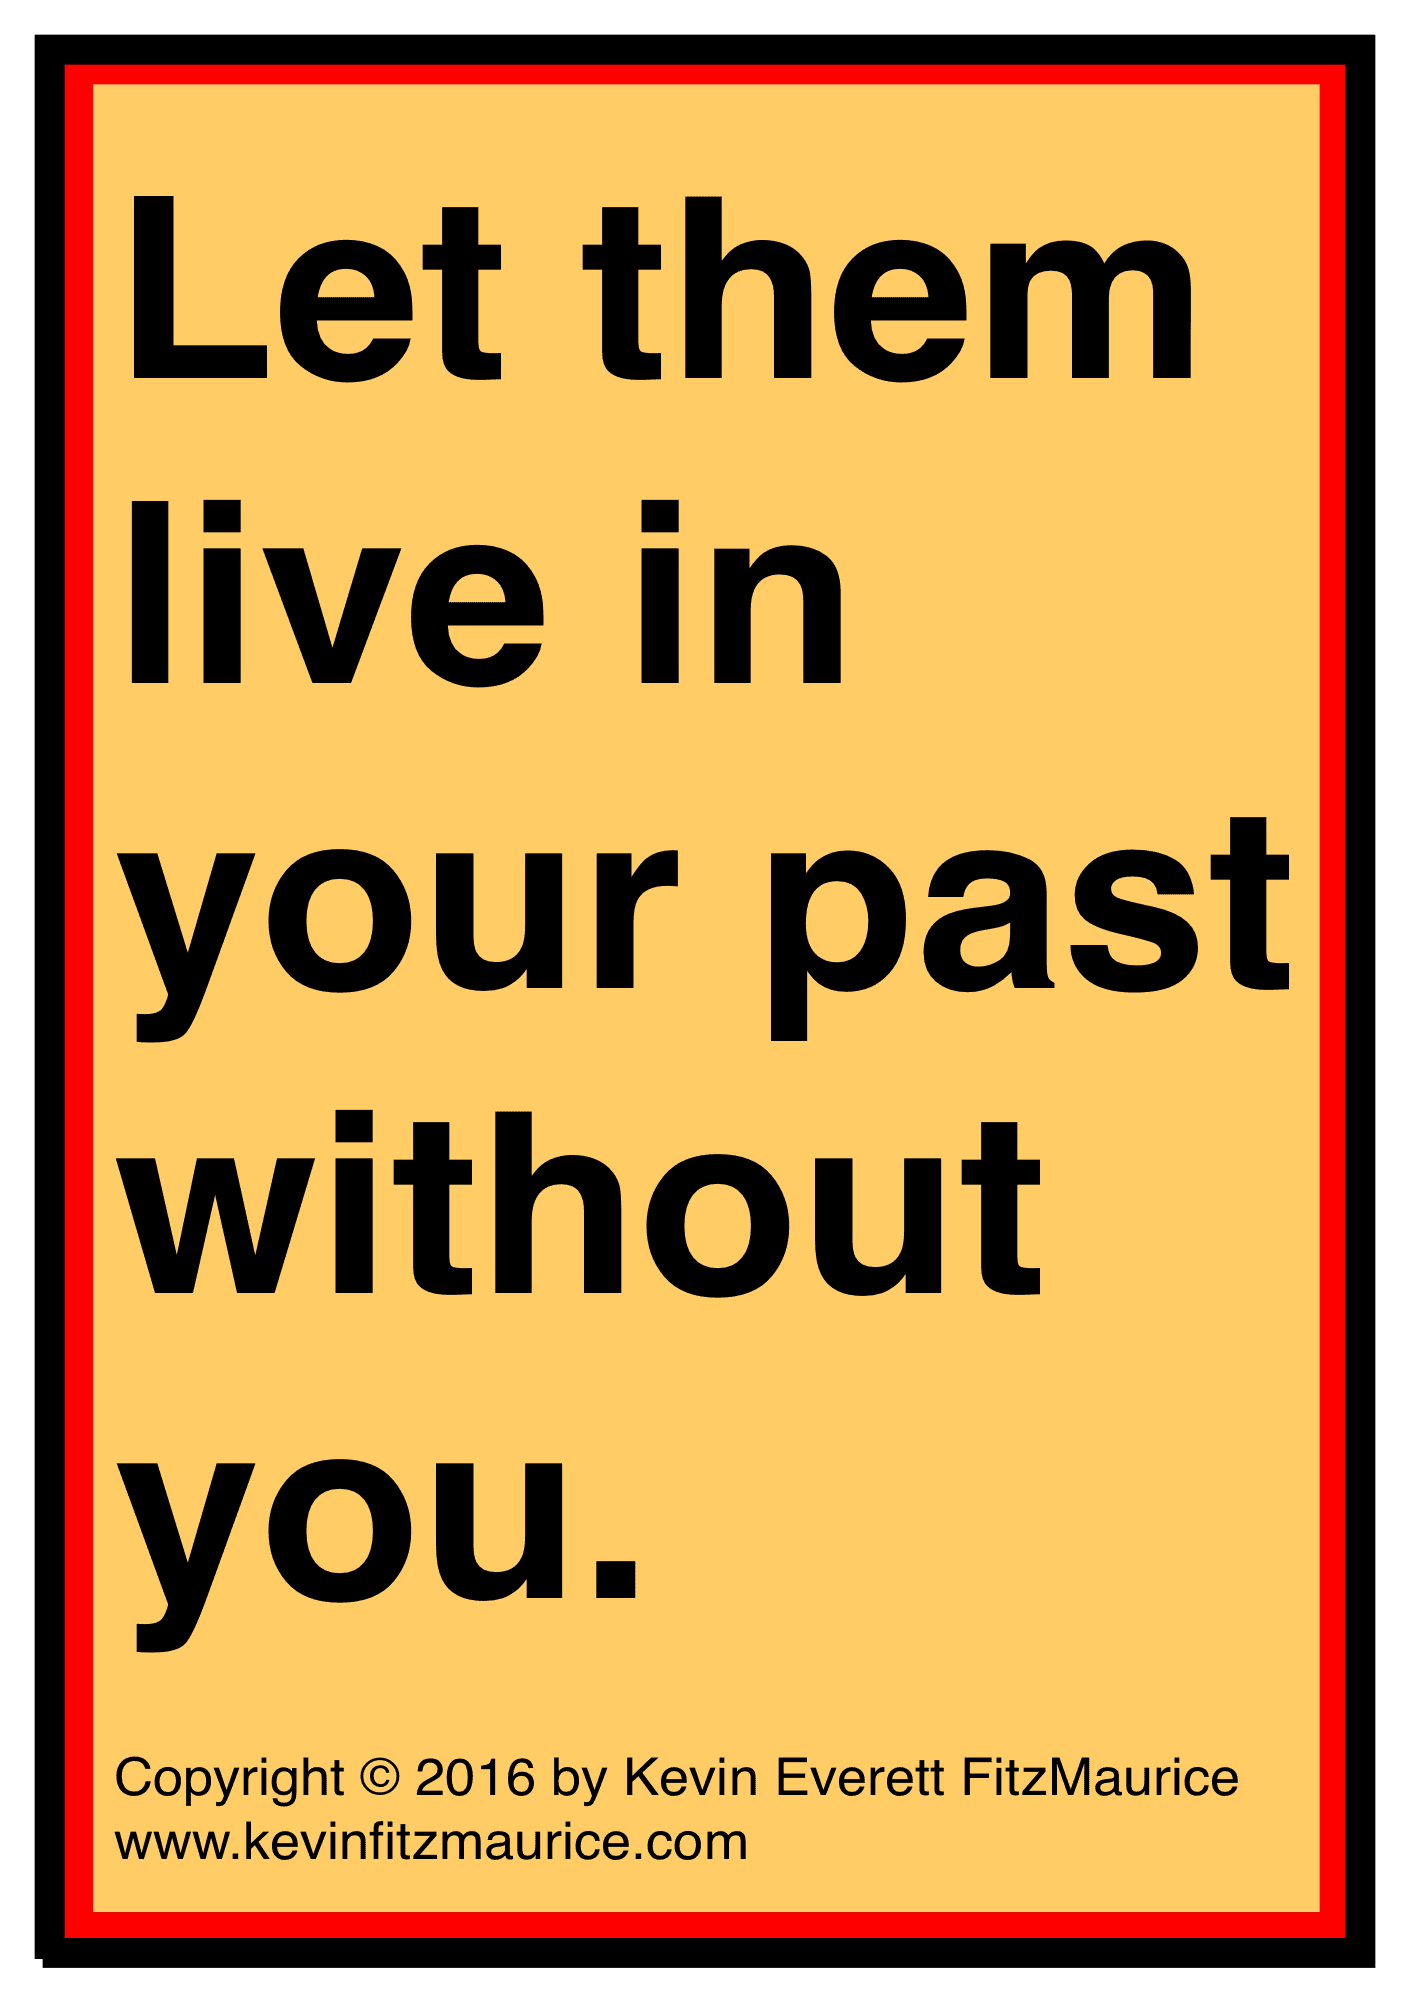 let them have your past